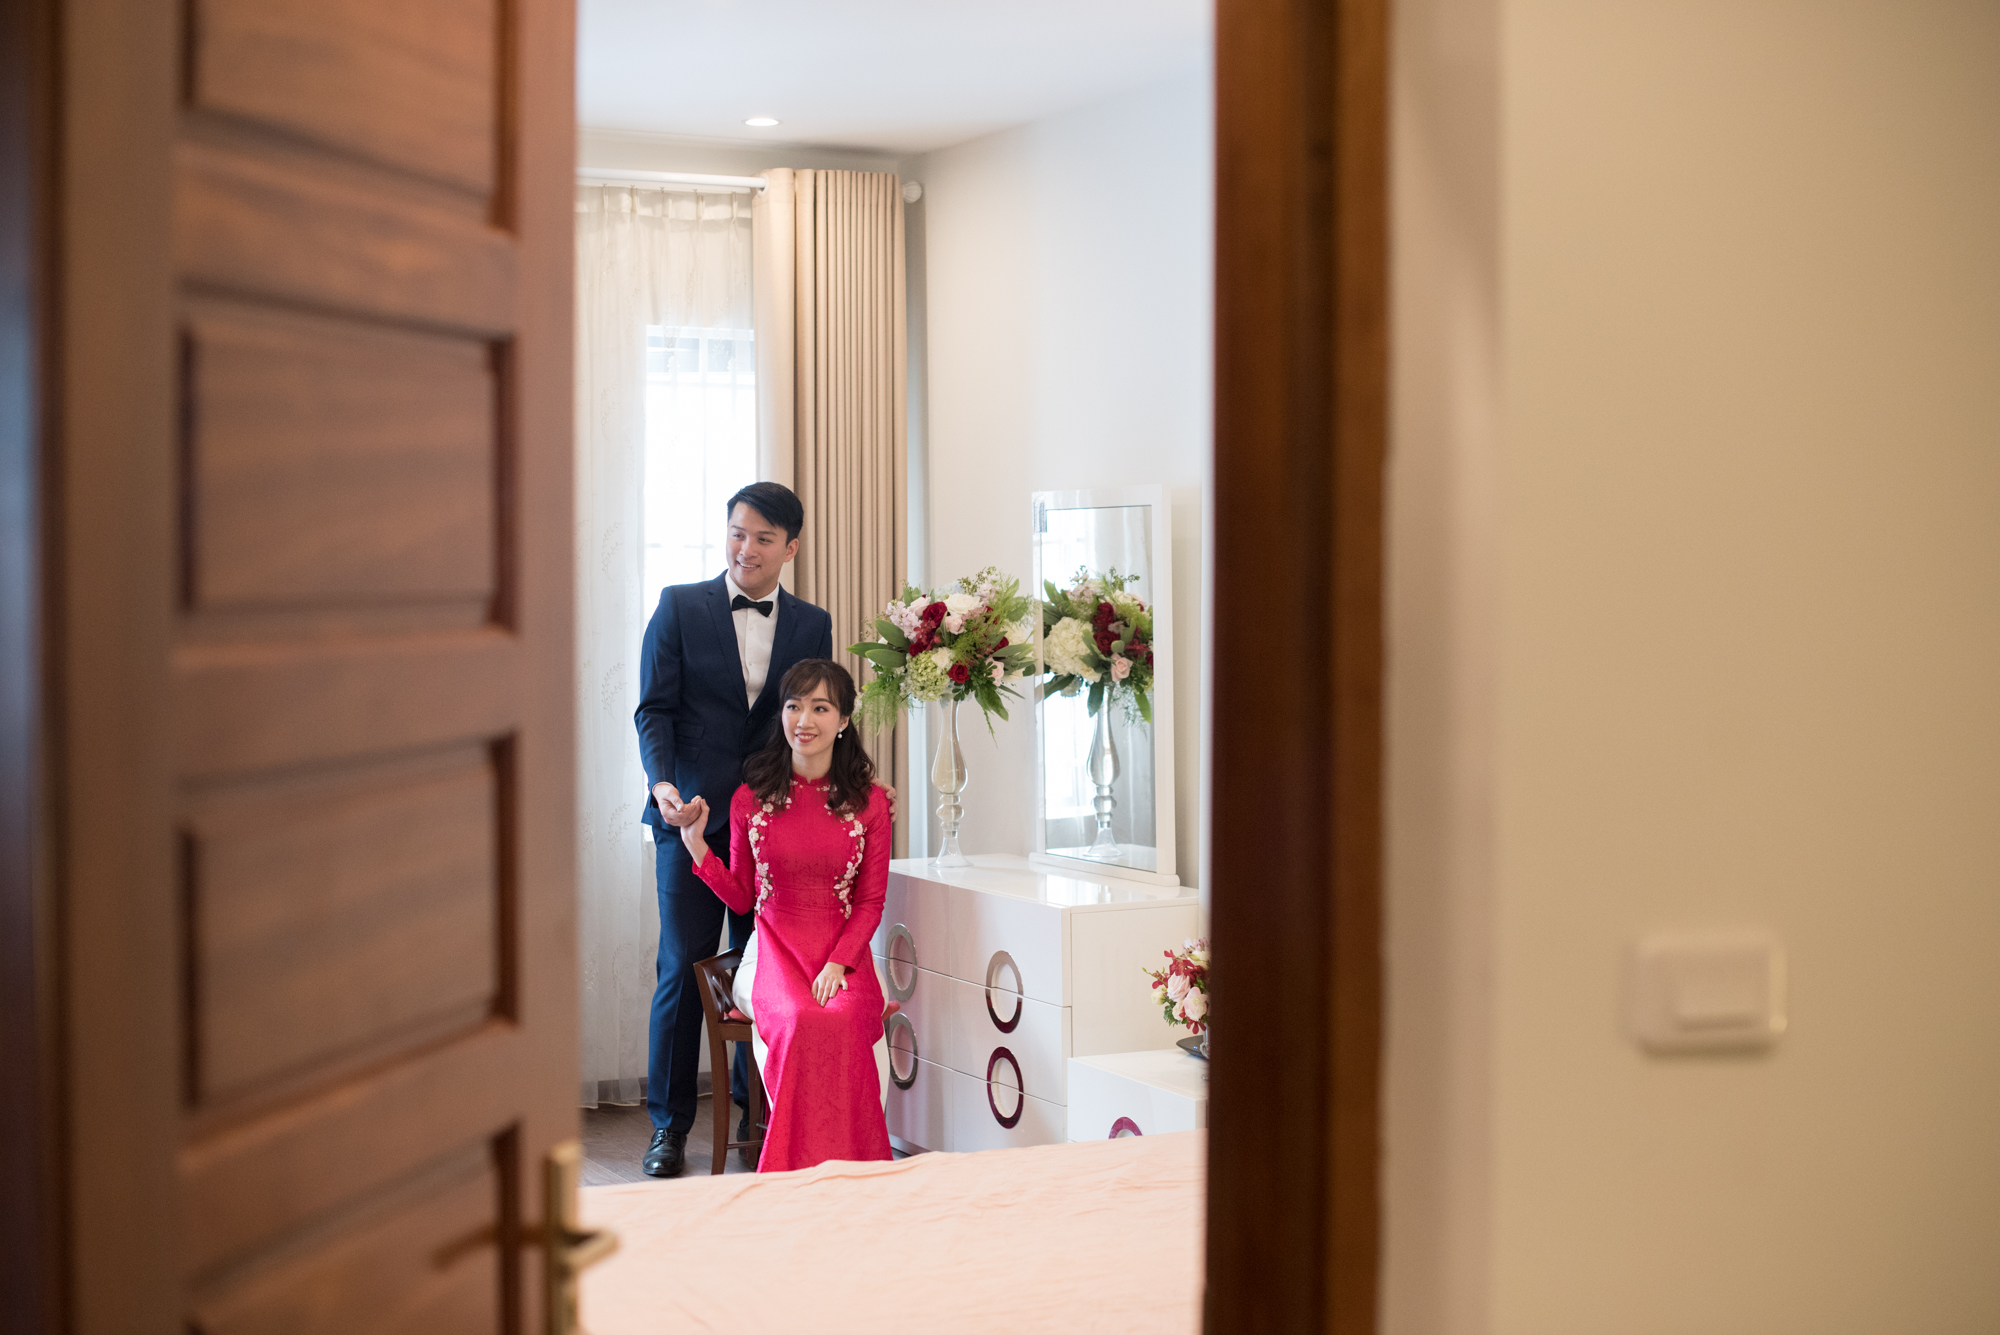 THEIR STORY - My & Minh was introduced to each other in one of the most unromantic way that is (according to the bride), via a matchmaker. However, that did not stop the couple from having one of the most adorable love stories.